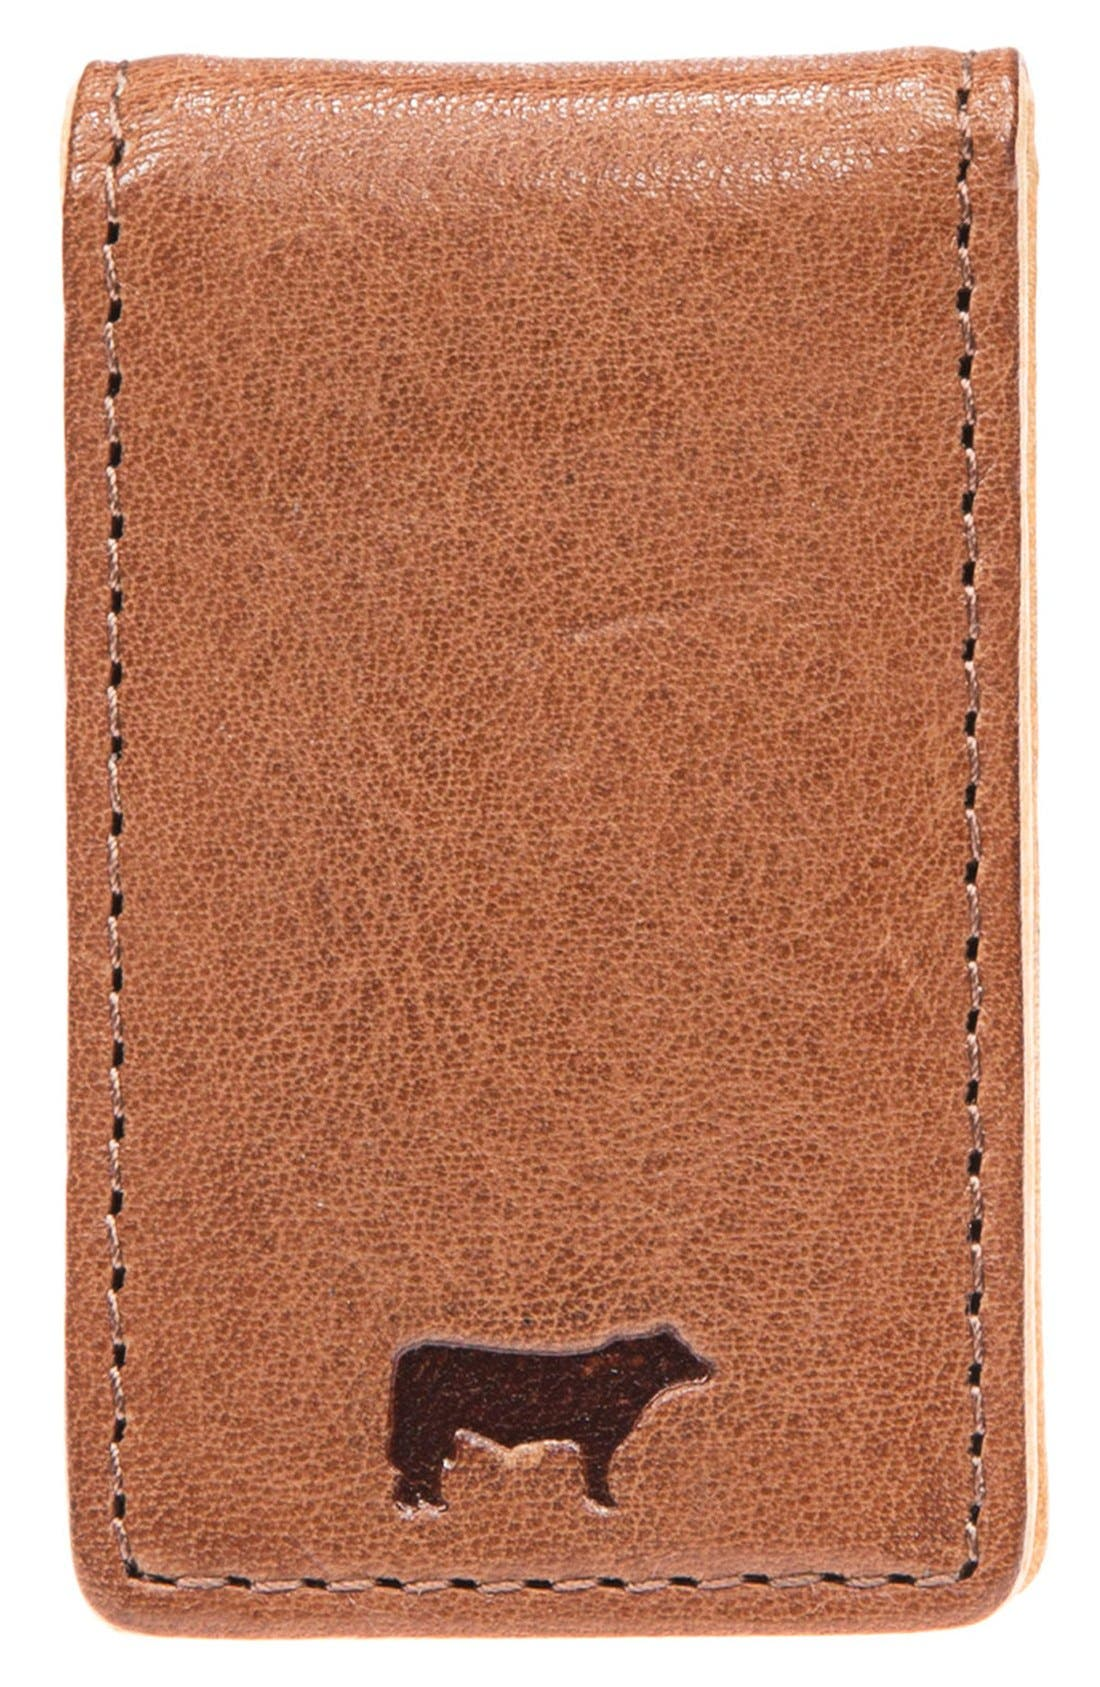 Main Image - Will Leather Goods 'Cibreo' Money Clip